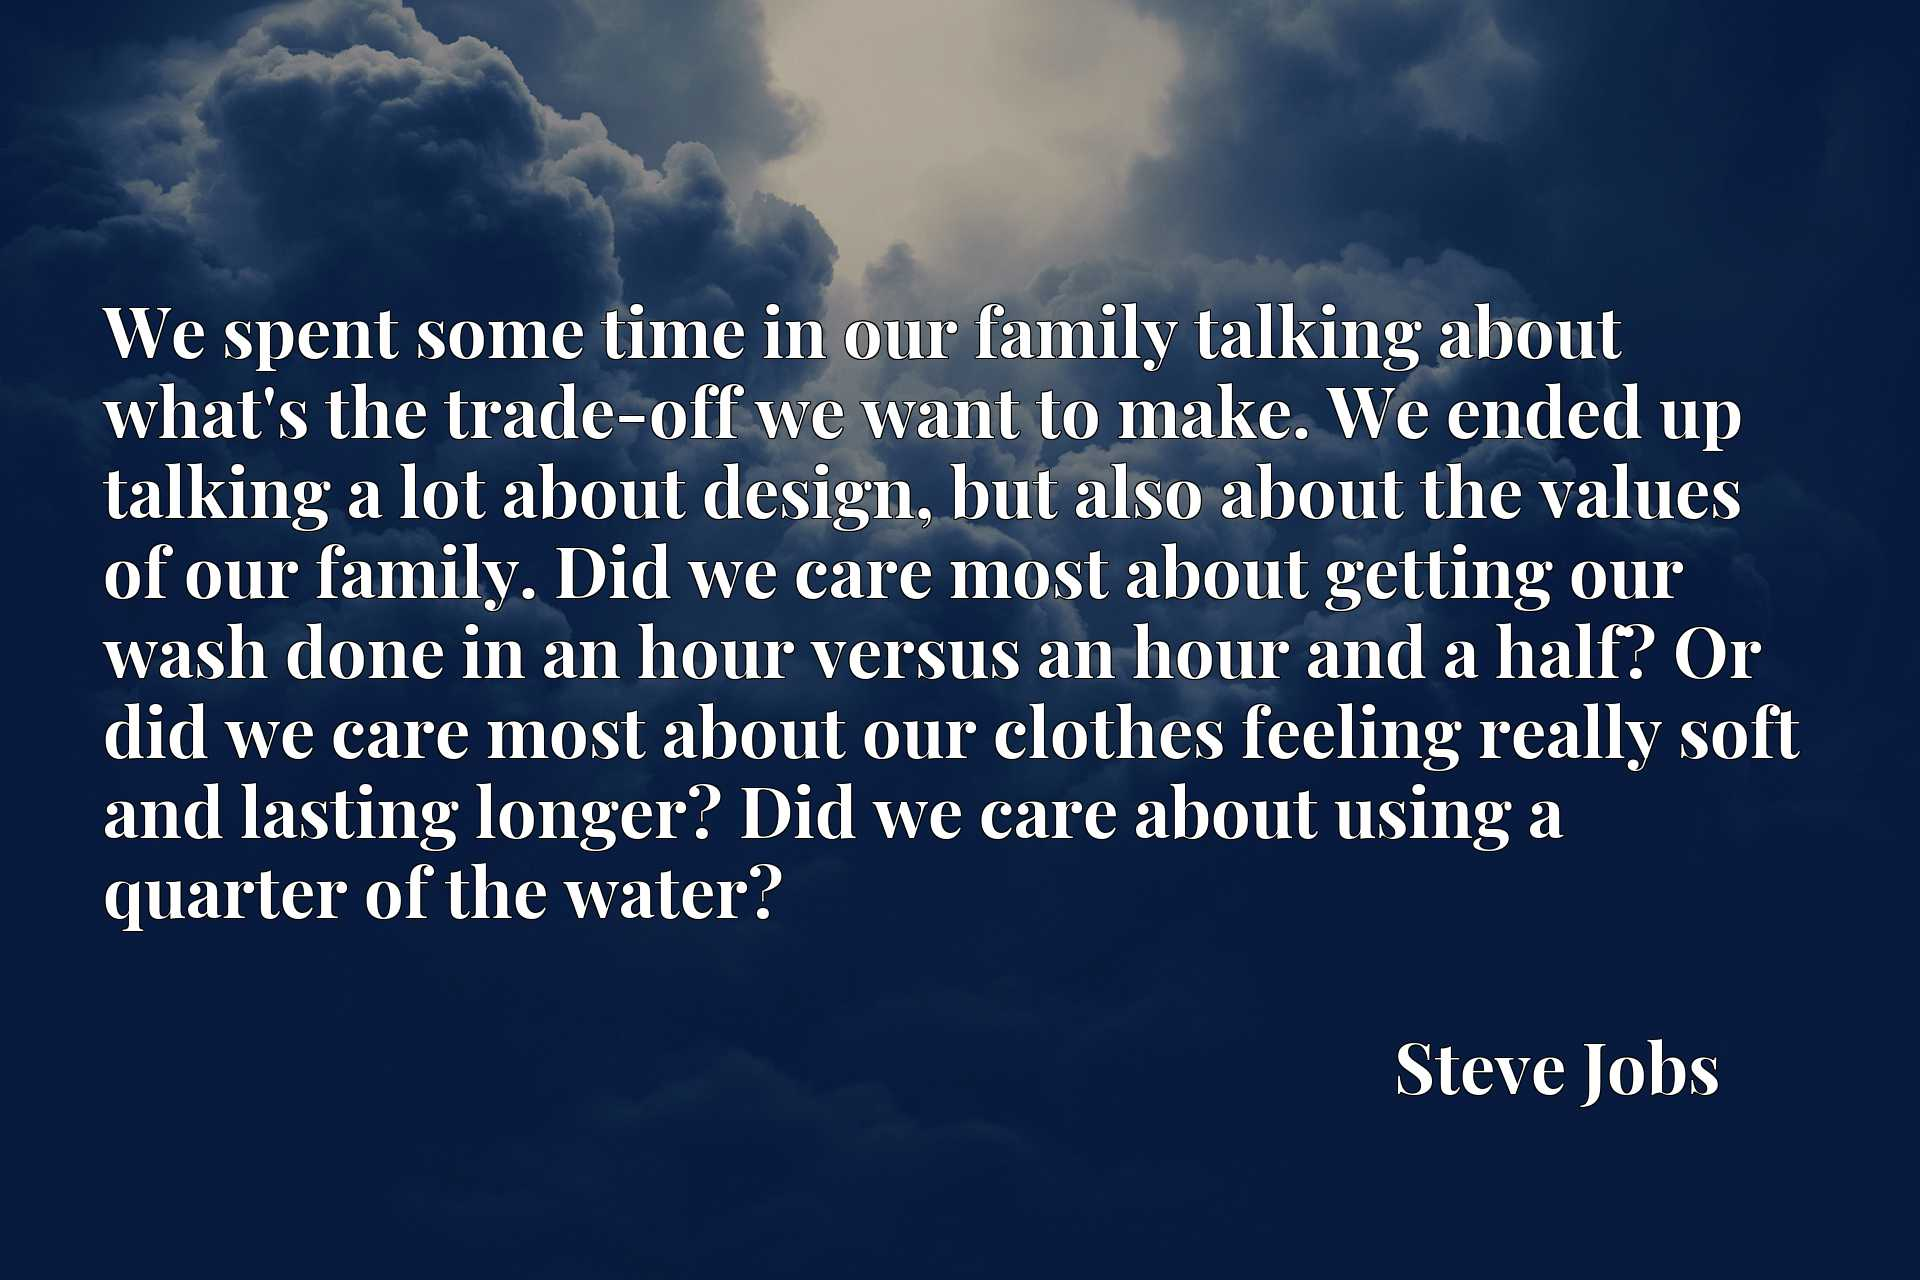 We spent some time in our family talking about what's the trade-off we want to make. We ended up talking a lot about design, but also about the values of our family. Did we care most about getting our wash done in an hour versus an hour and a half? Or did we care most about our clothes feeling really soft and lasting longer? Did we care about using a quarter of the water?